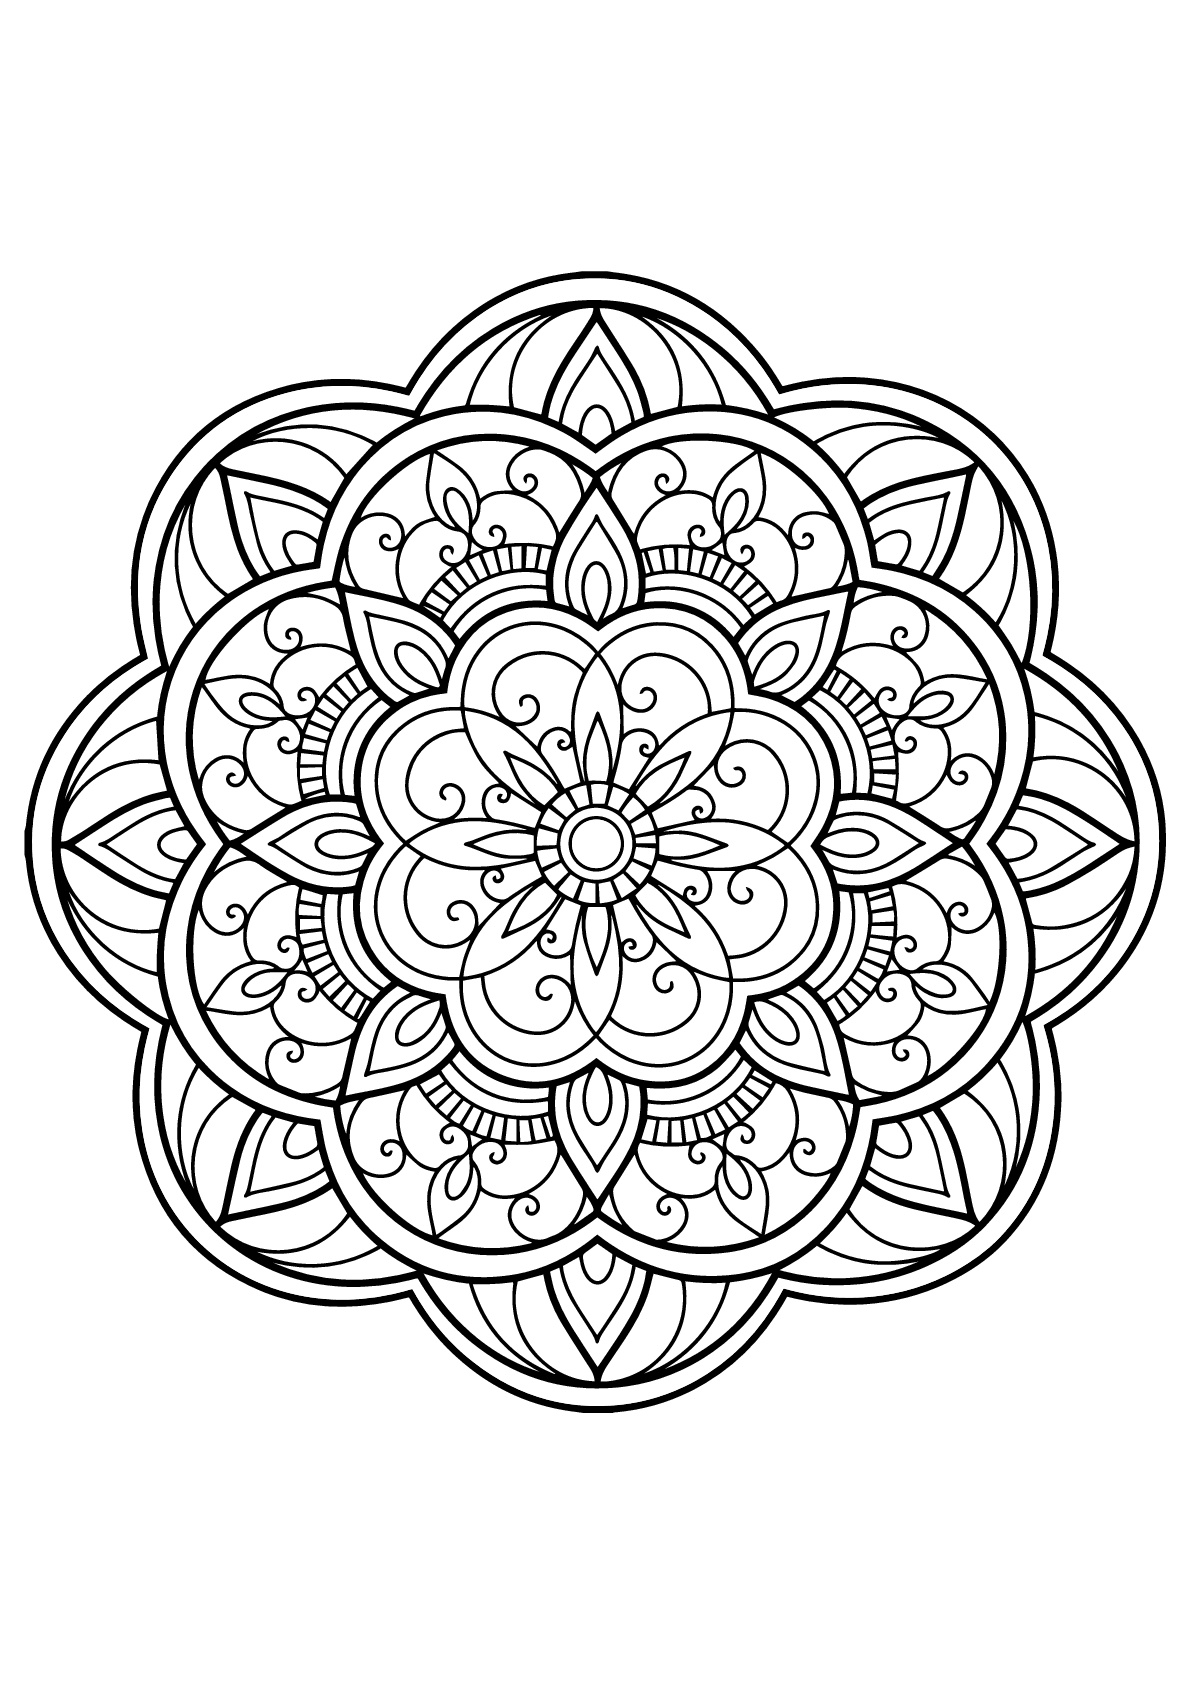 Mandala from free coloring books for adults 14 - M&alas Adult ...